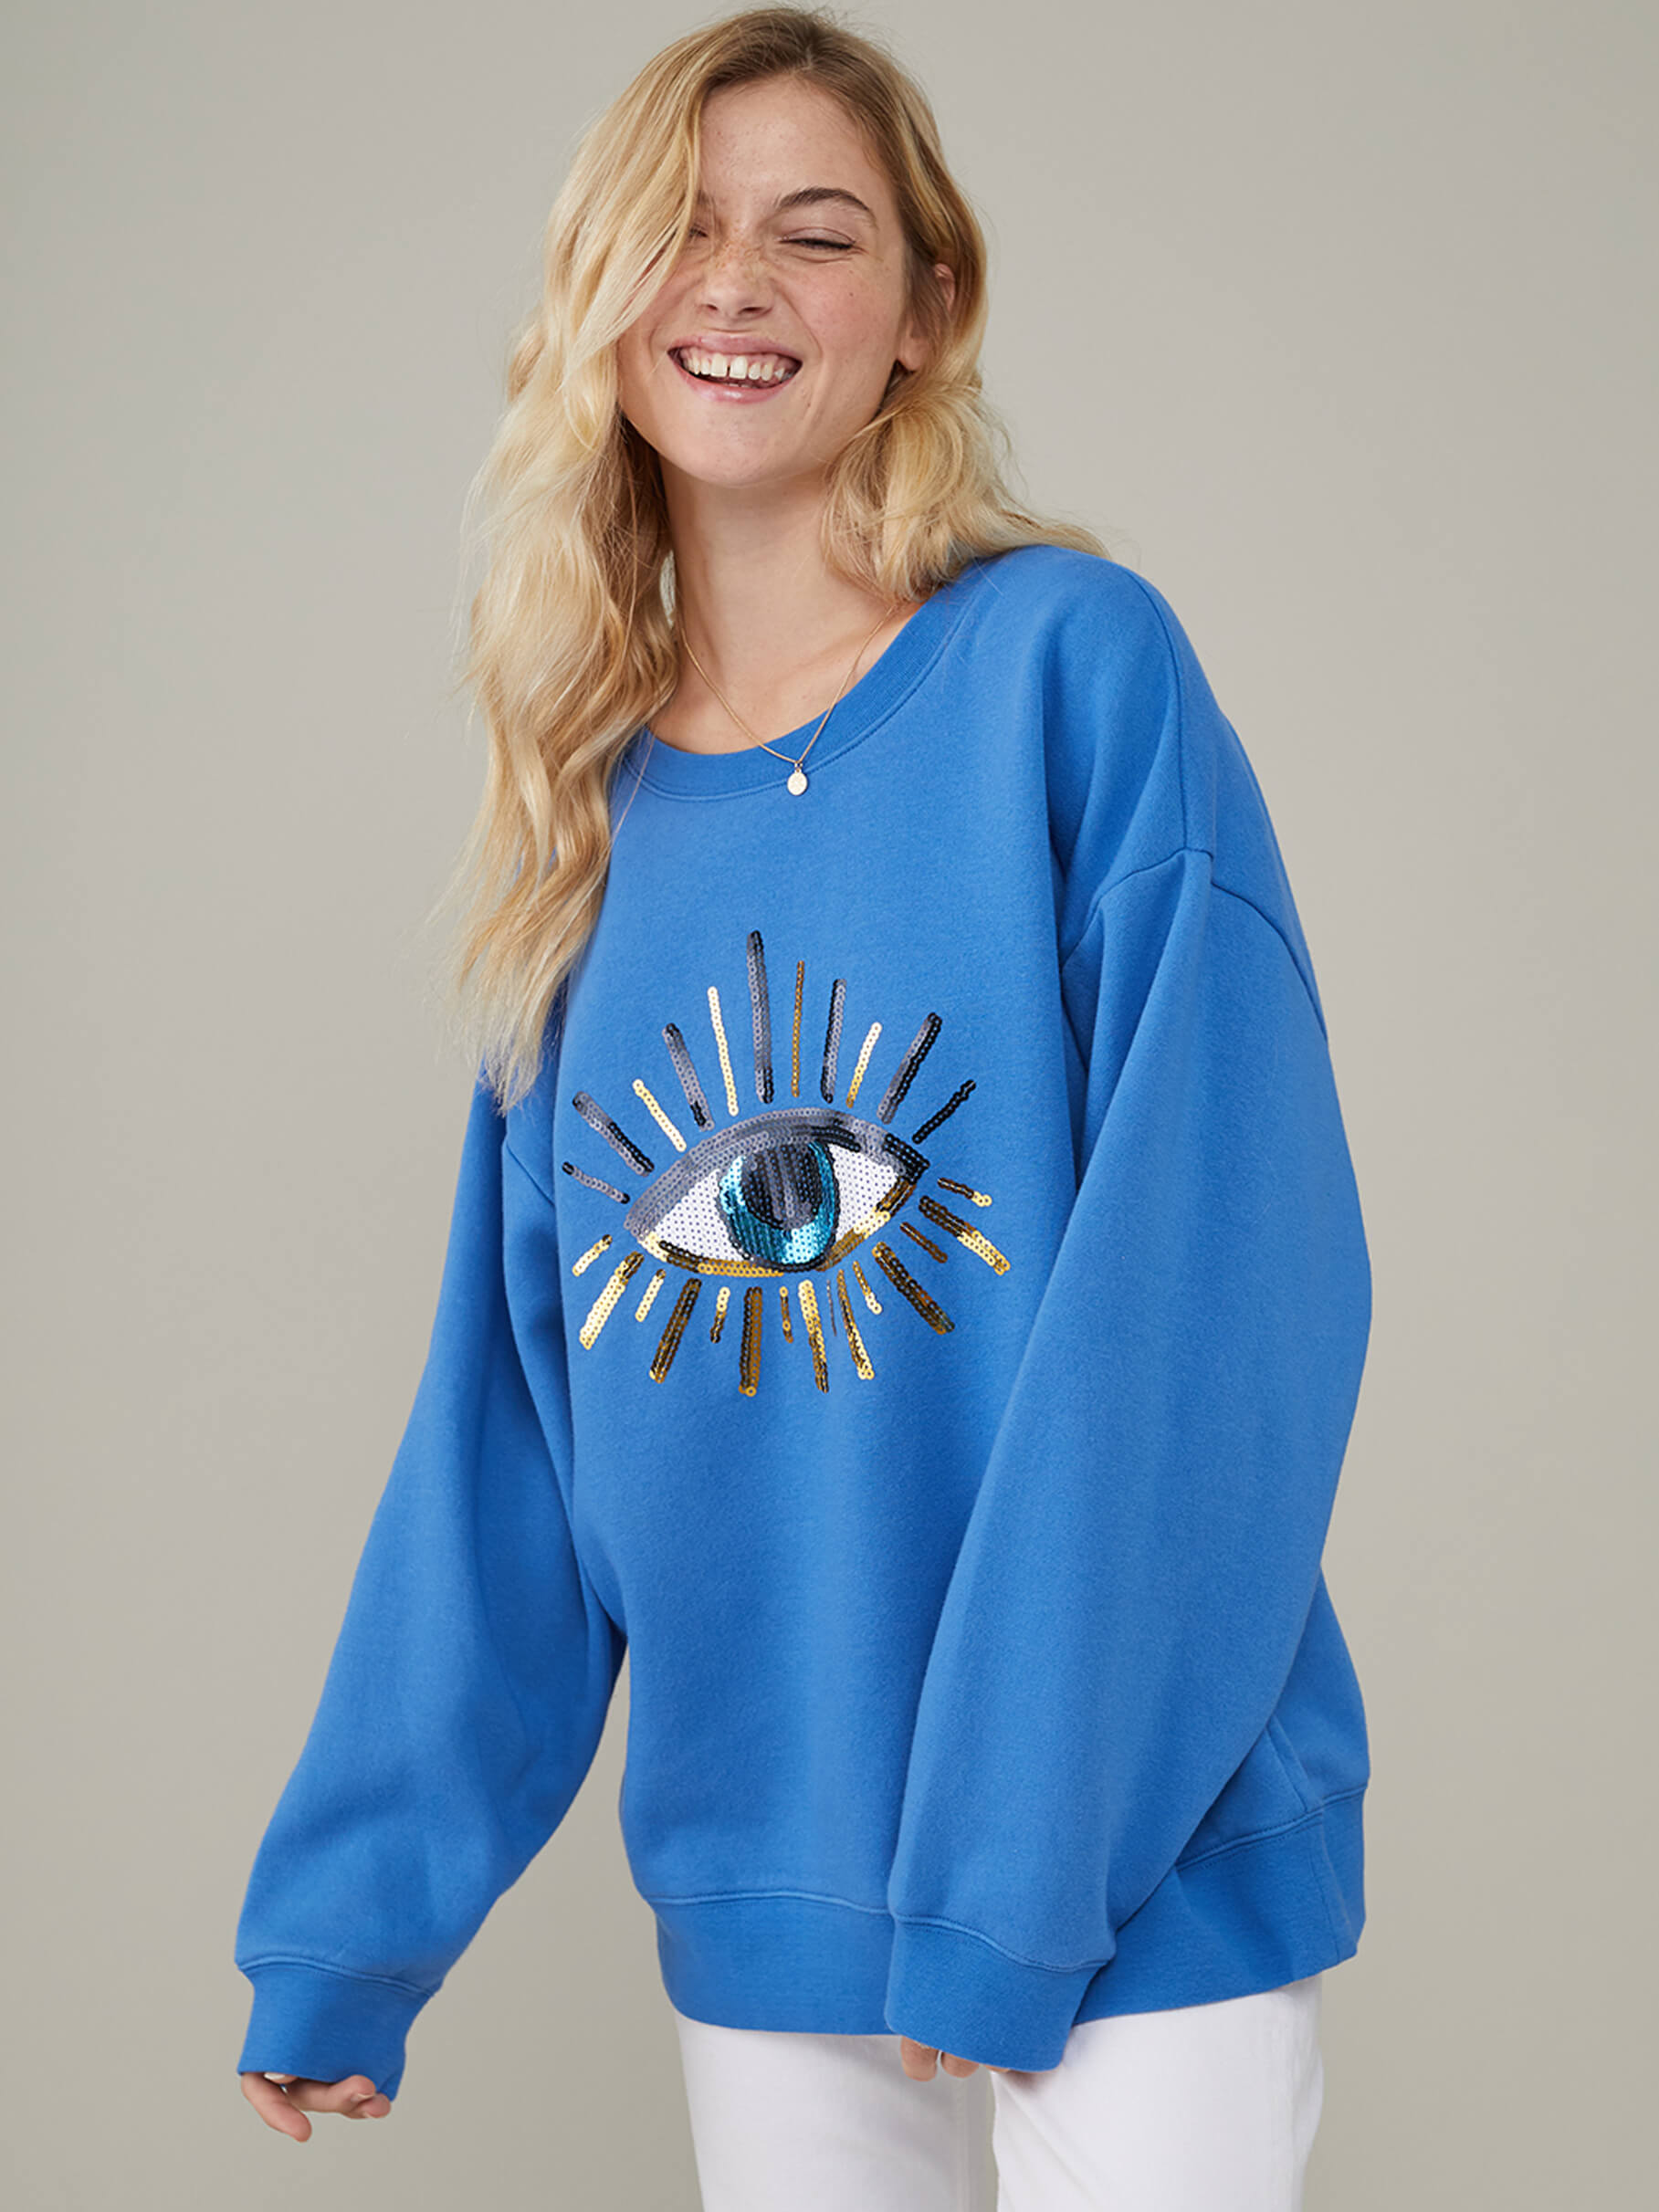 Alexa - Oversized Sweatshirt - Evil Eye - Ocean Blue